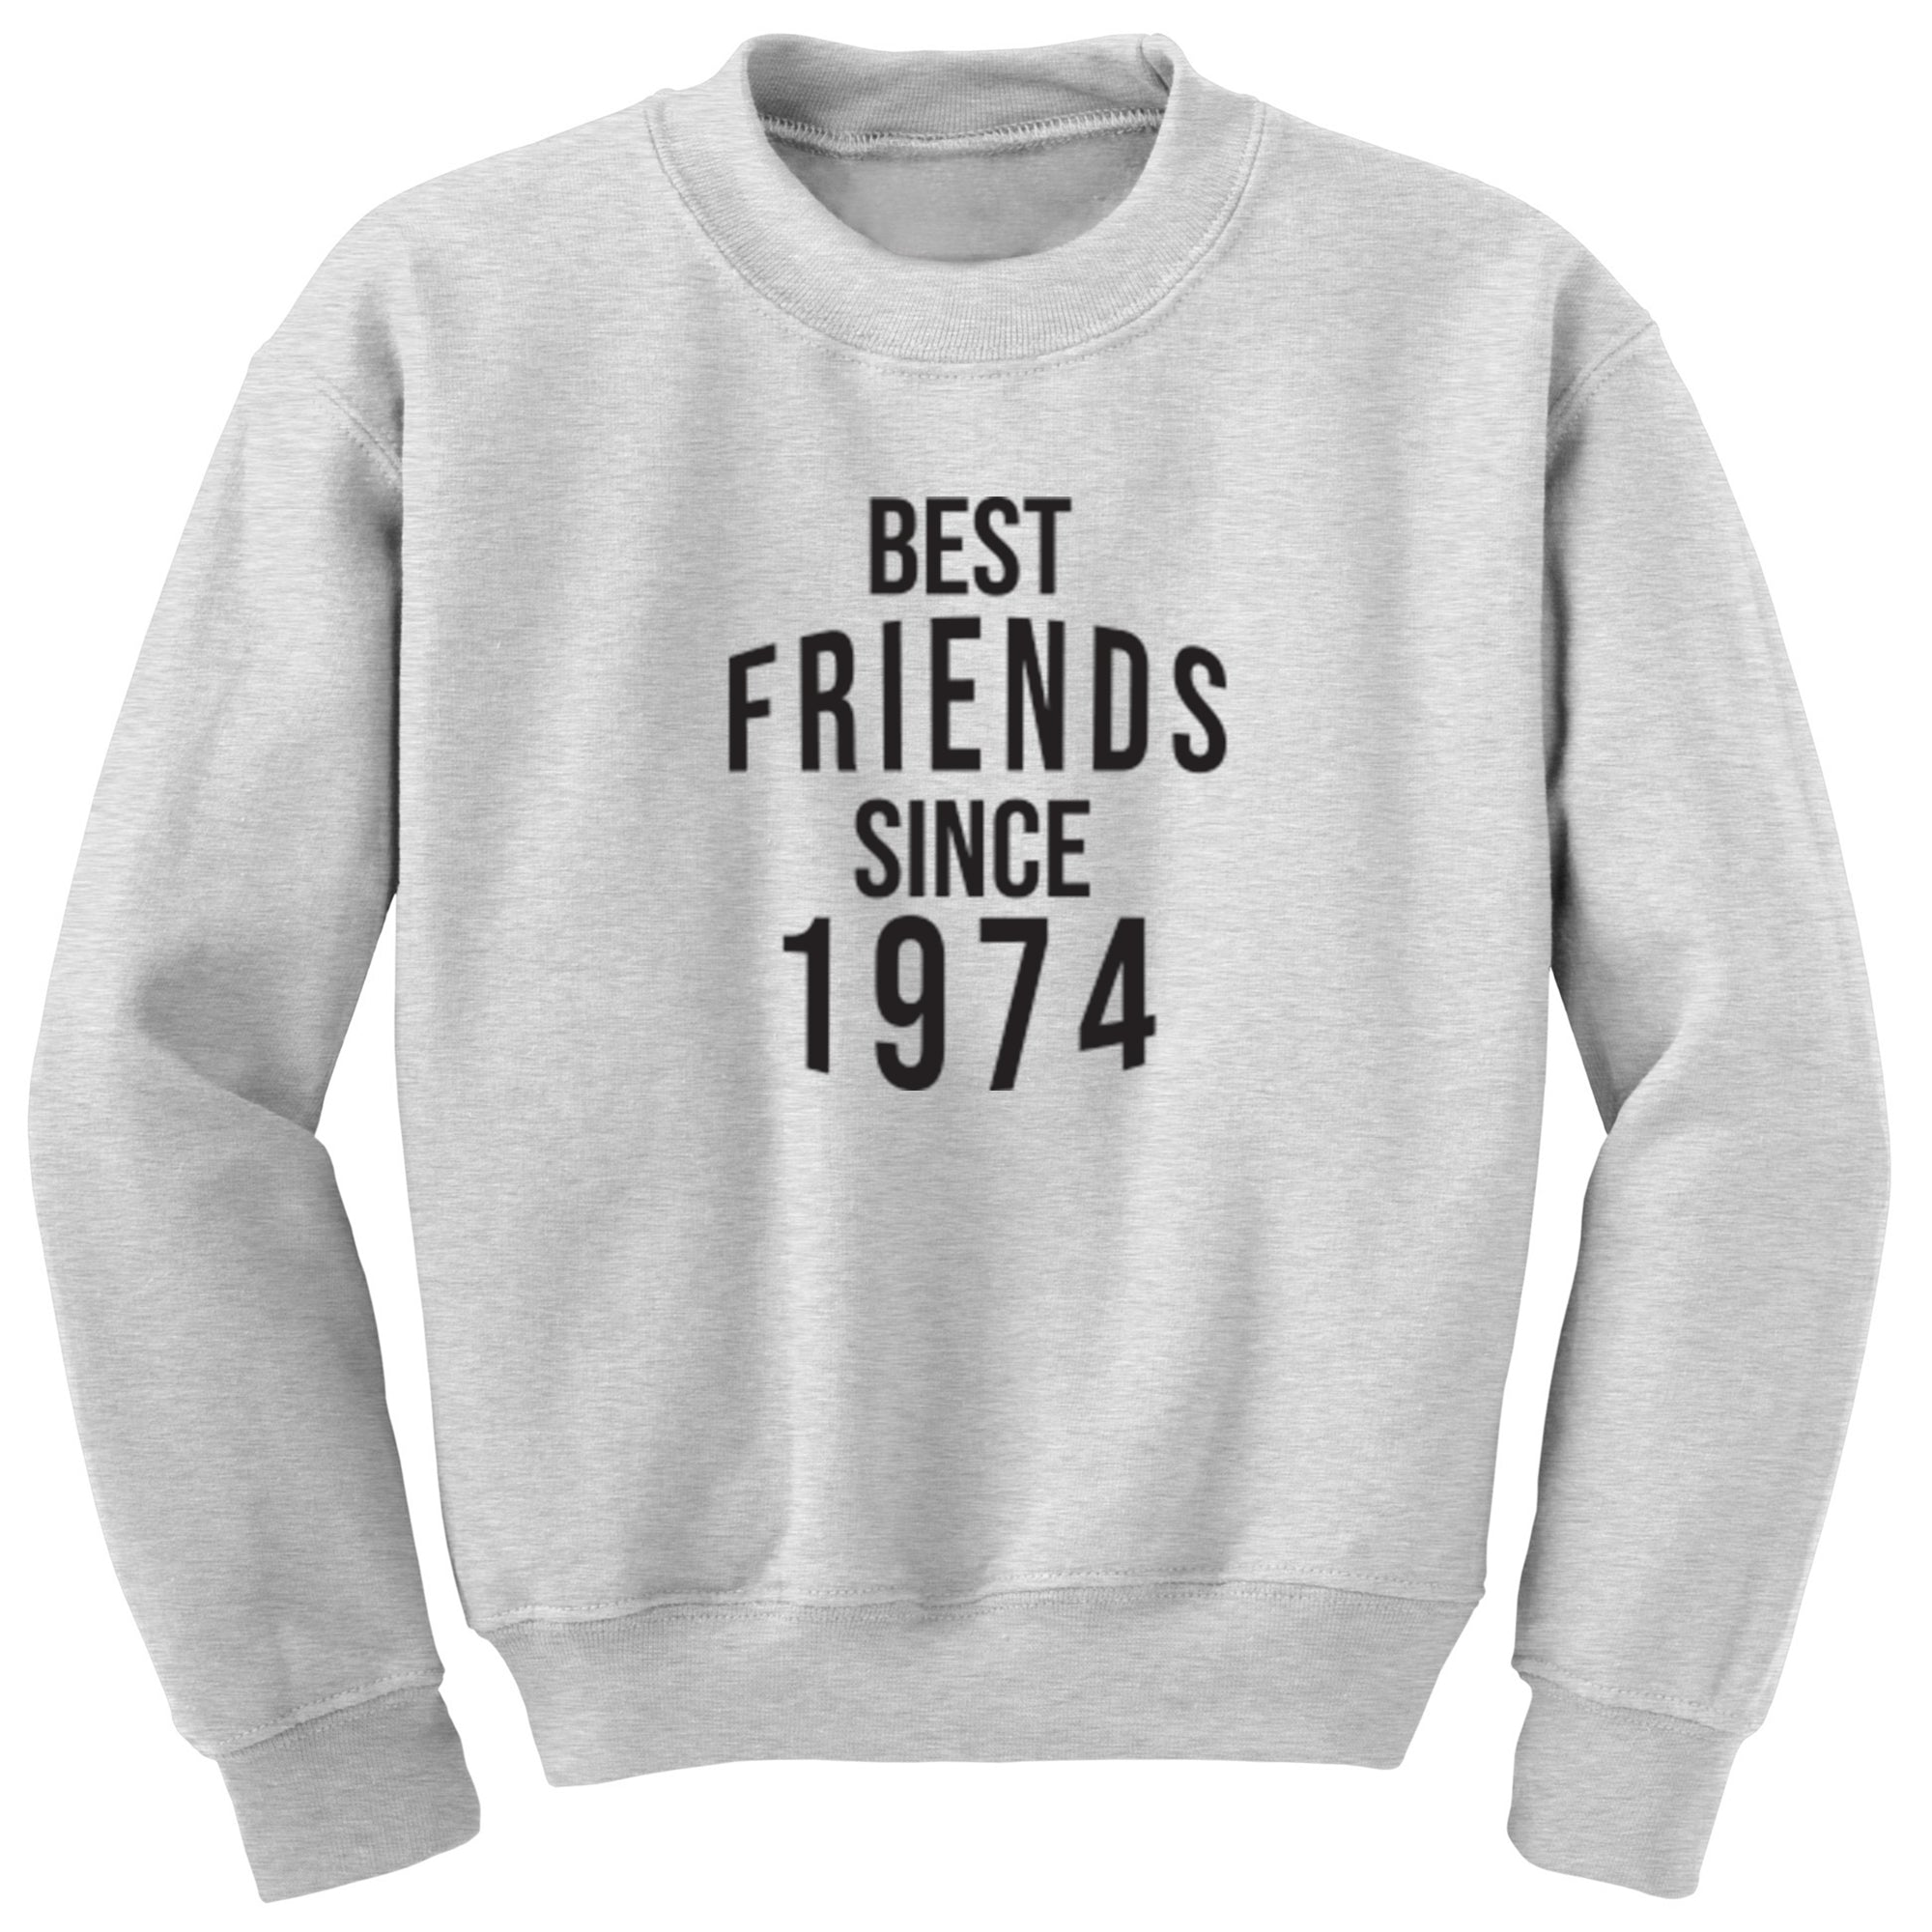 Best Friends Since 1974 Unisex Jumper S0553 - Illustrated Identity Ltd.